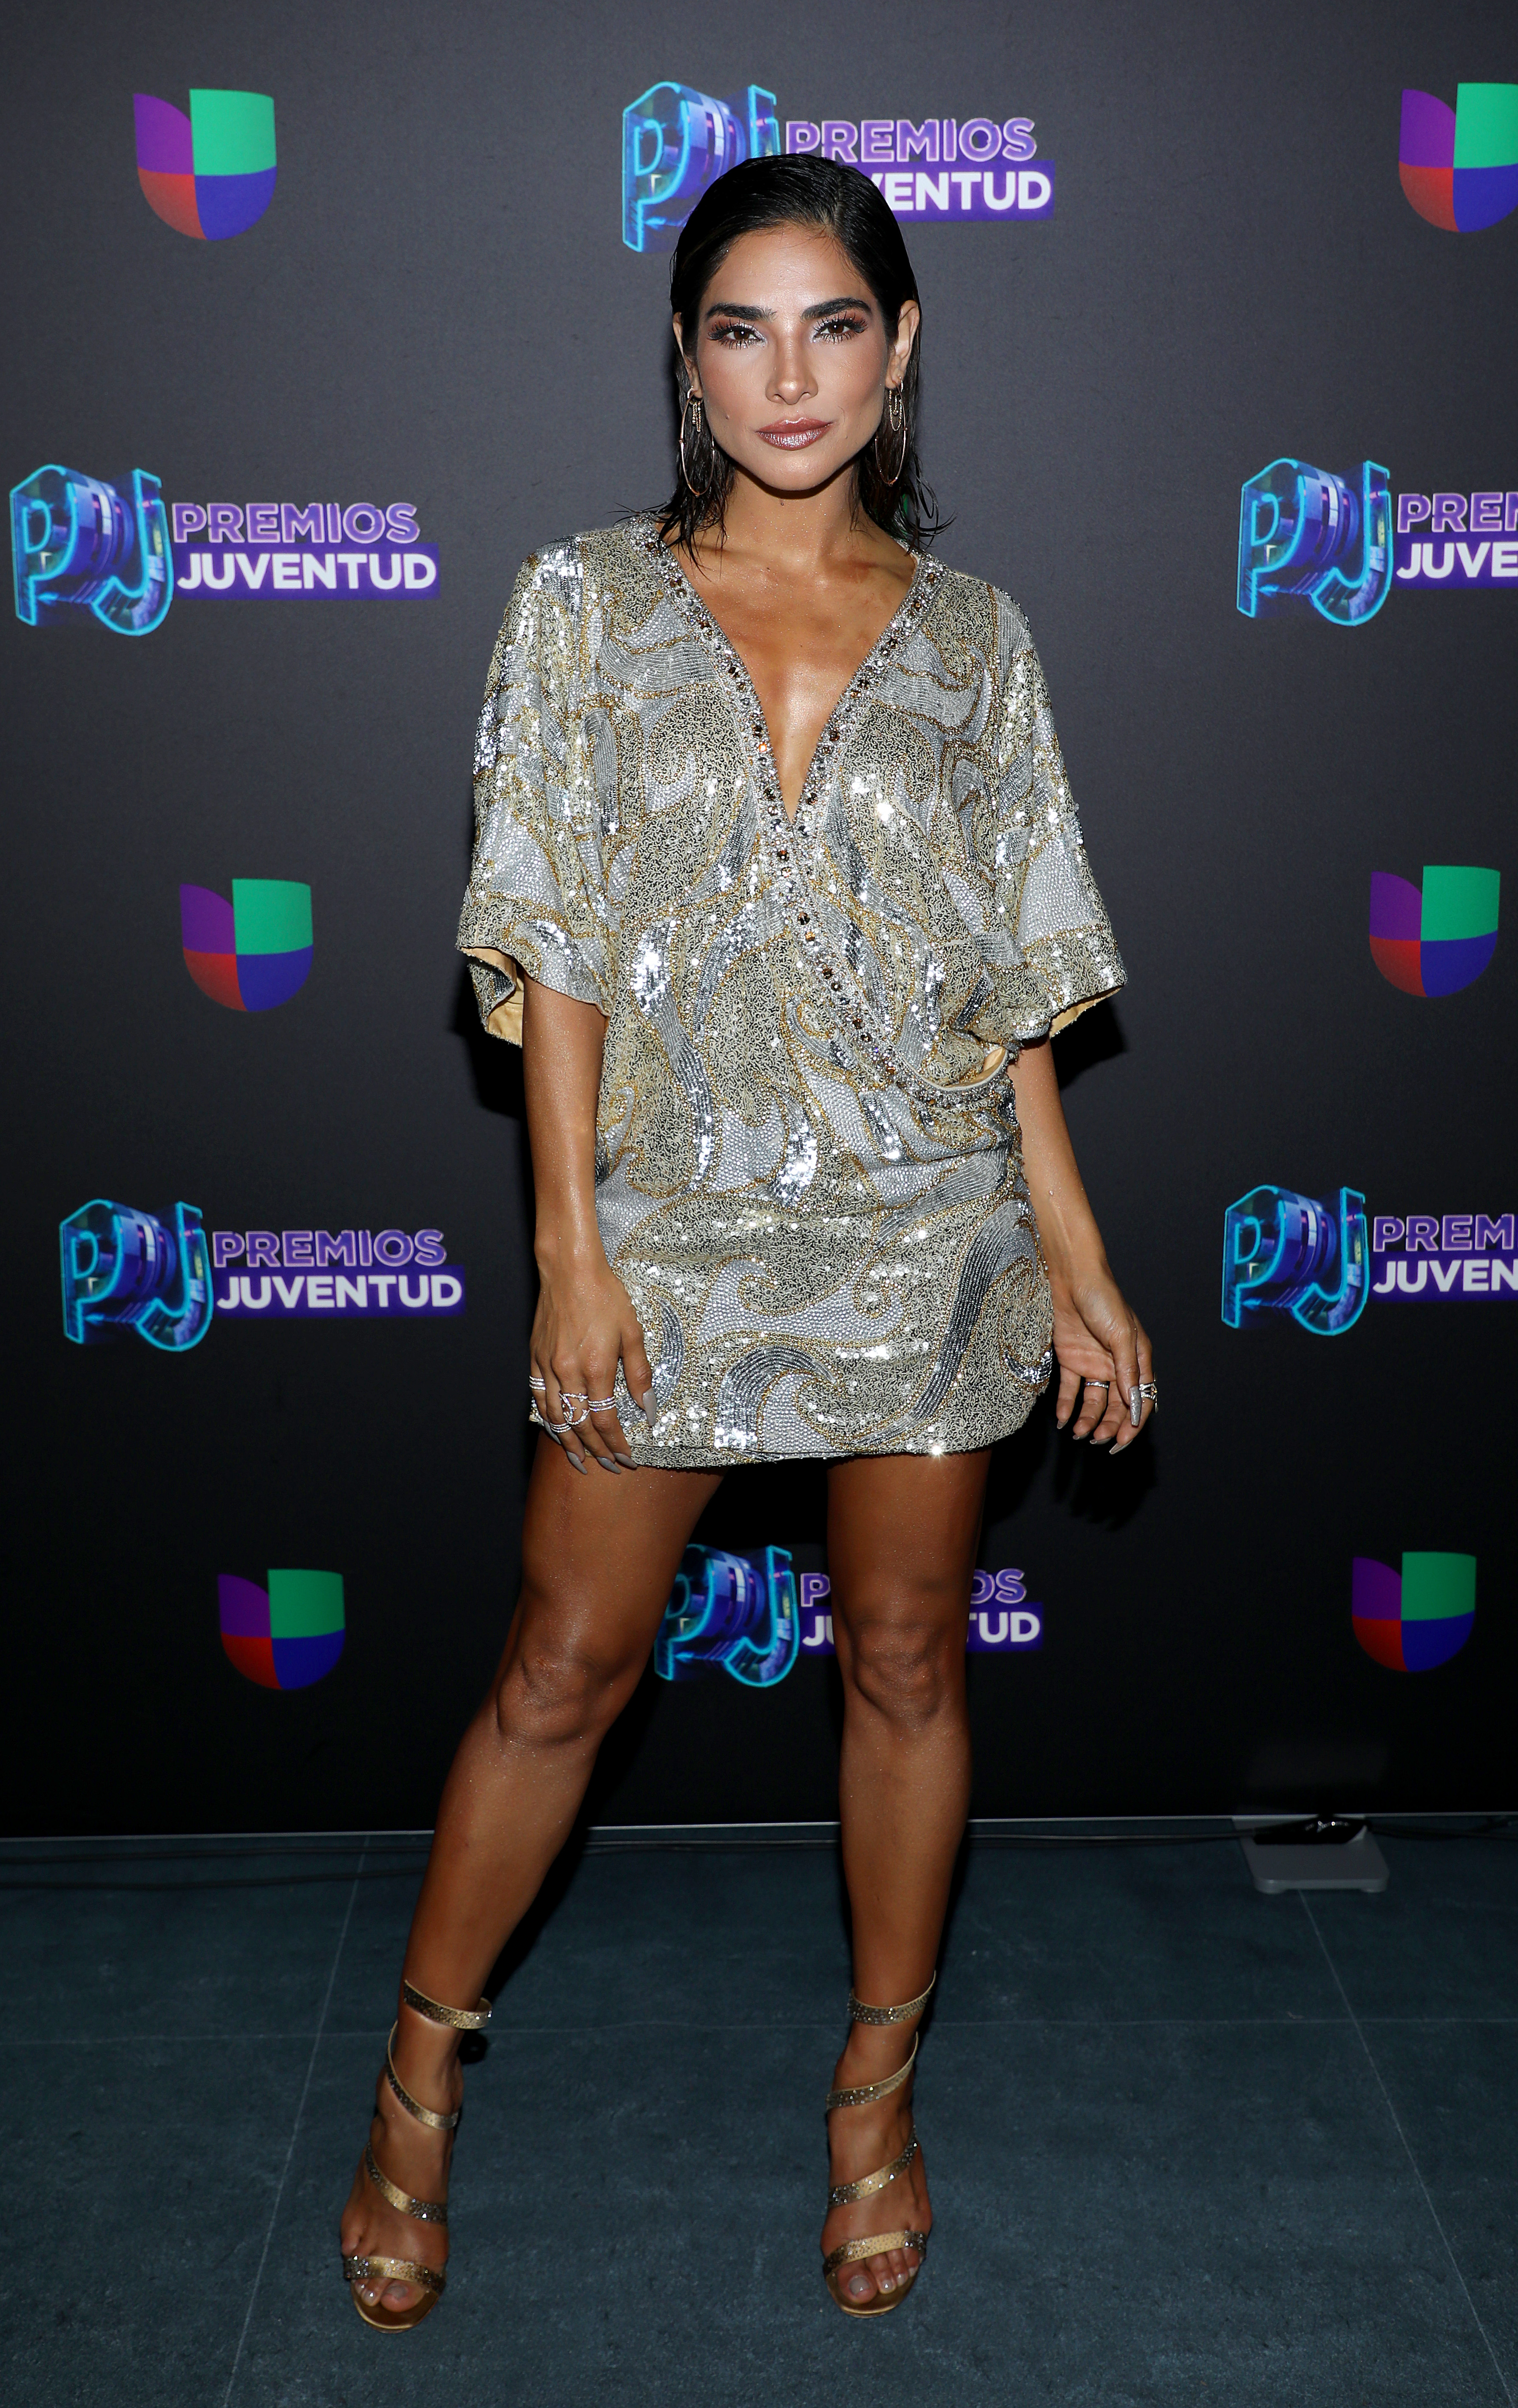 Premios Juventud 2019 - Press Room